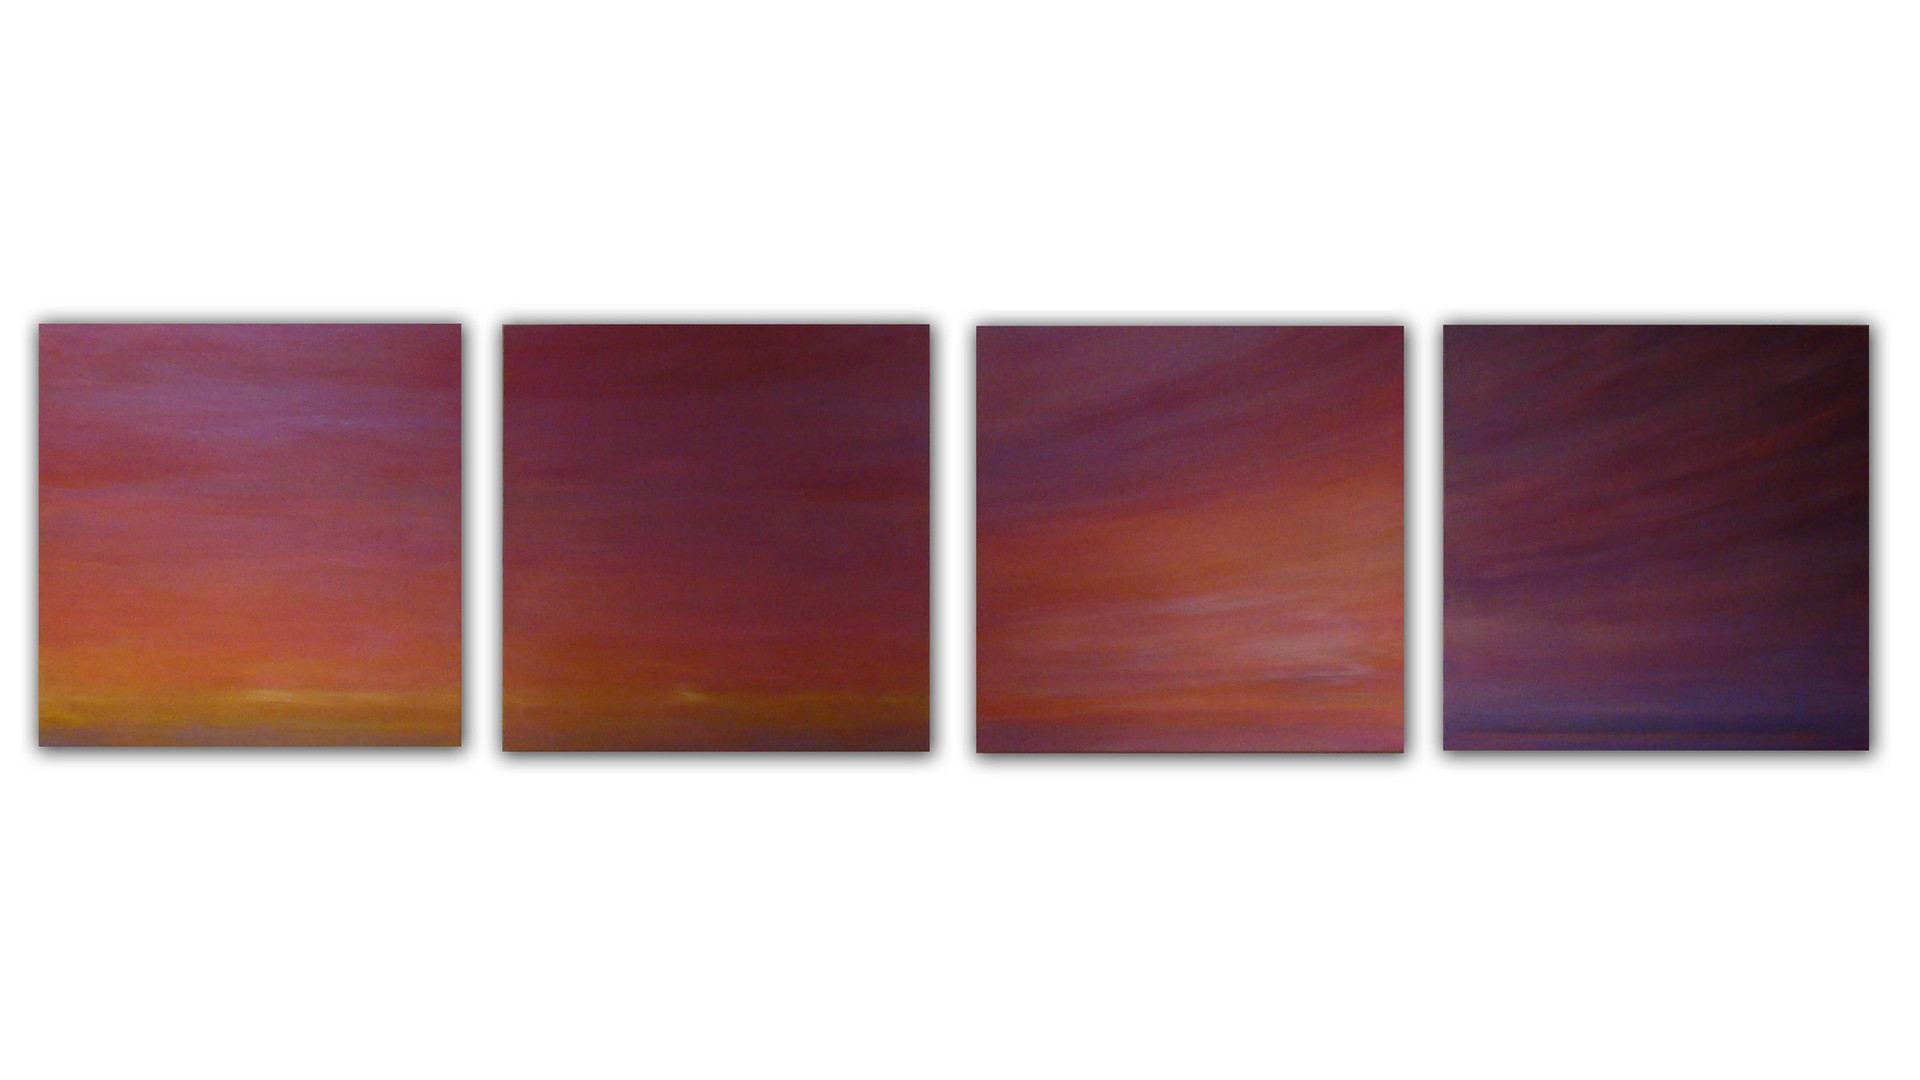 Beyond the Sunset, 2011, acrylic on wood panel, 46 x 46 cm each